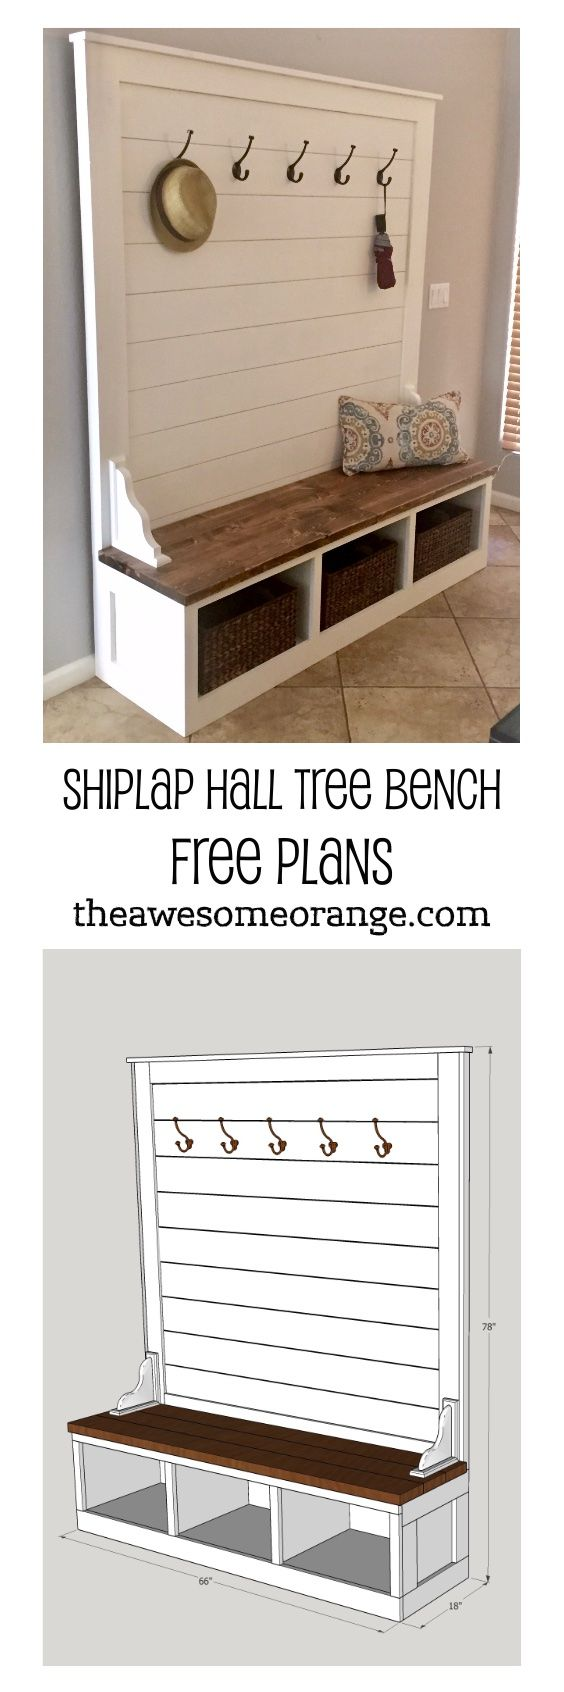 Free Plans From Www Theawesomeorange Com Shiplap Hall Tree Bench